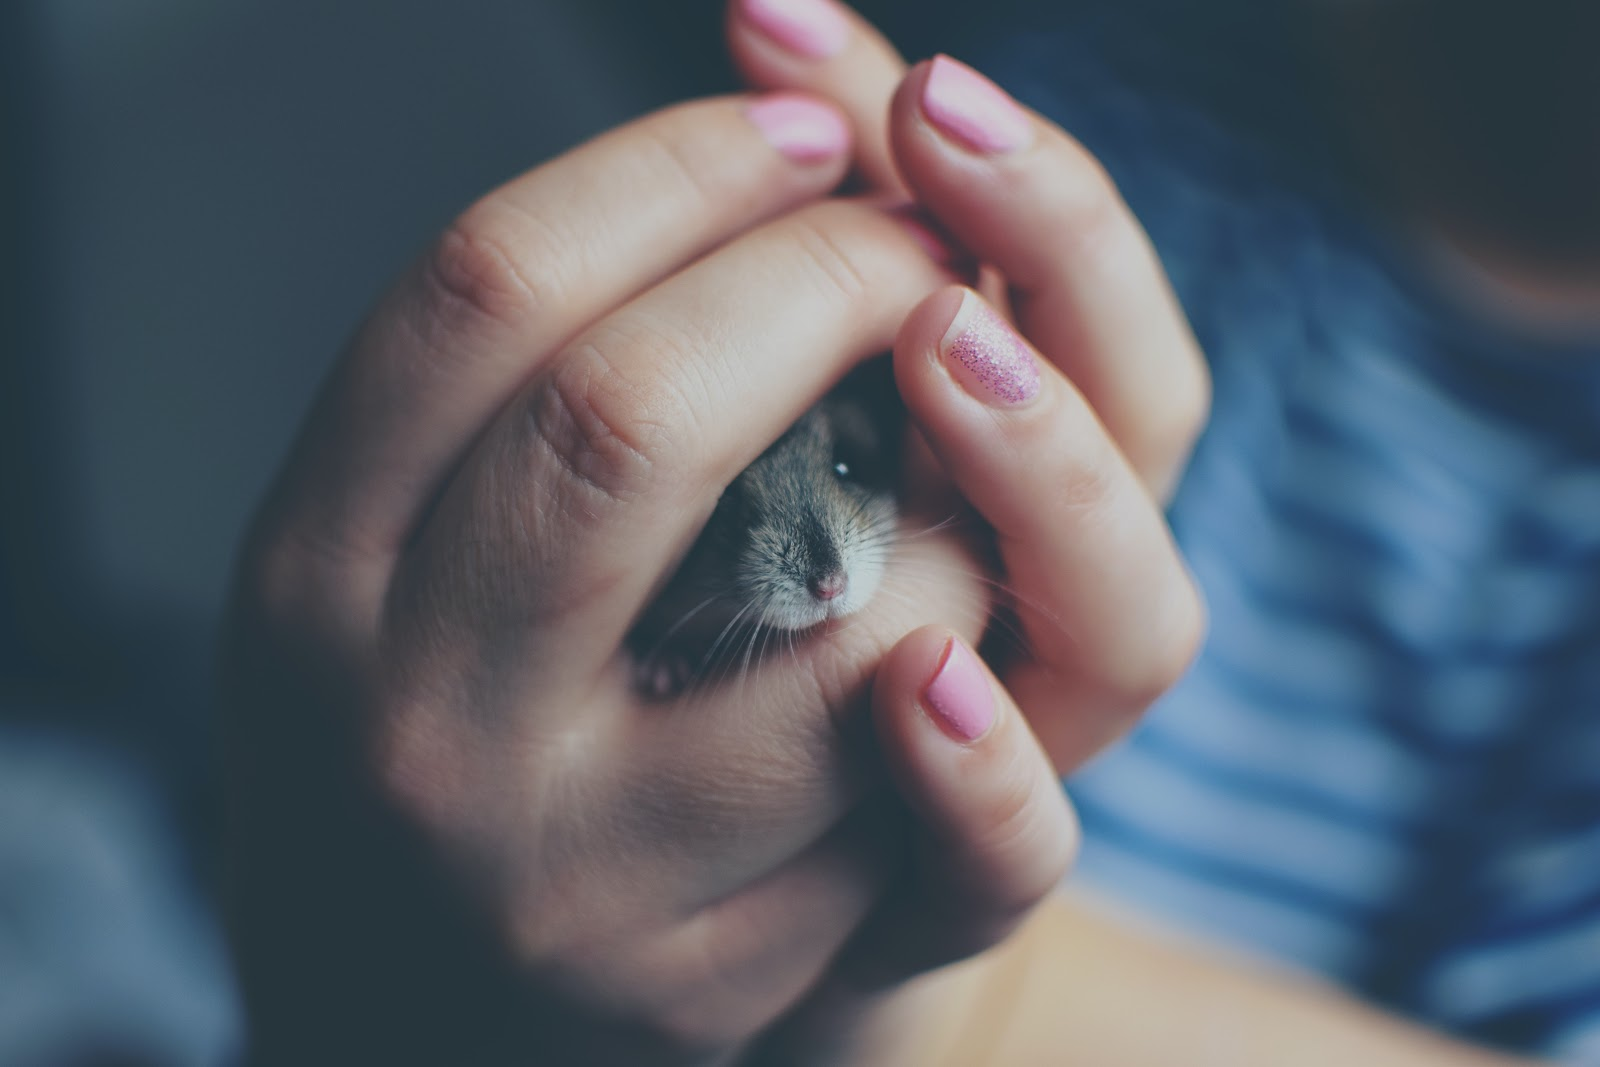 A girl holds her pet hamster in her hands.